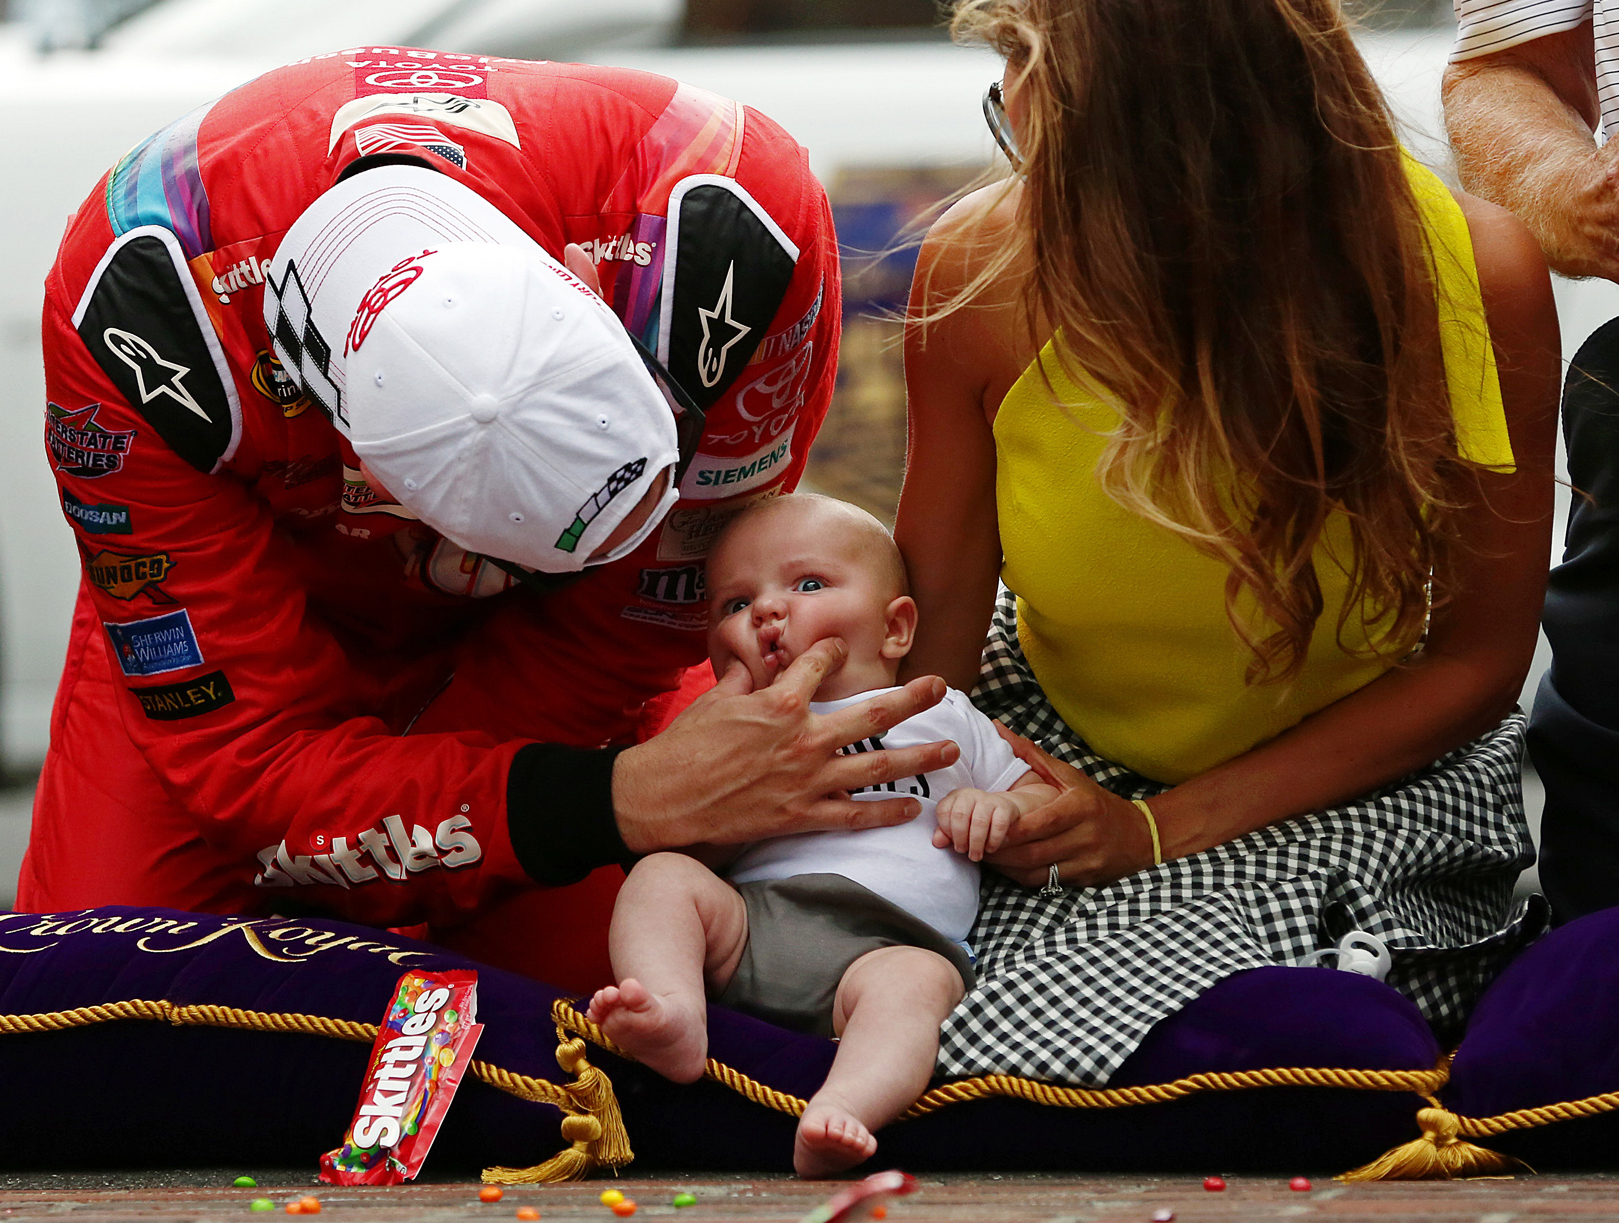 Sprint Cup Series driver Kyle Busch (18) squeezes the cheeks of son Brexton Locke next to wife Samantha at the finish line bricks after winning the Jeff Kyle 400, Indianapolis Motor Speedway, Sunday,  July 26, 2015, Indianapolis, Ind.